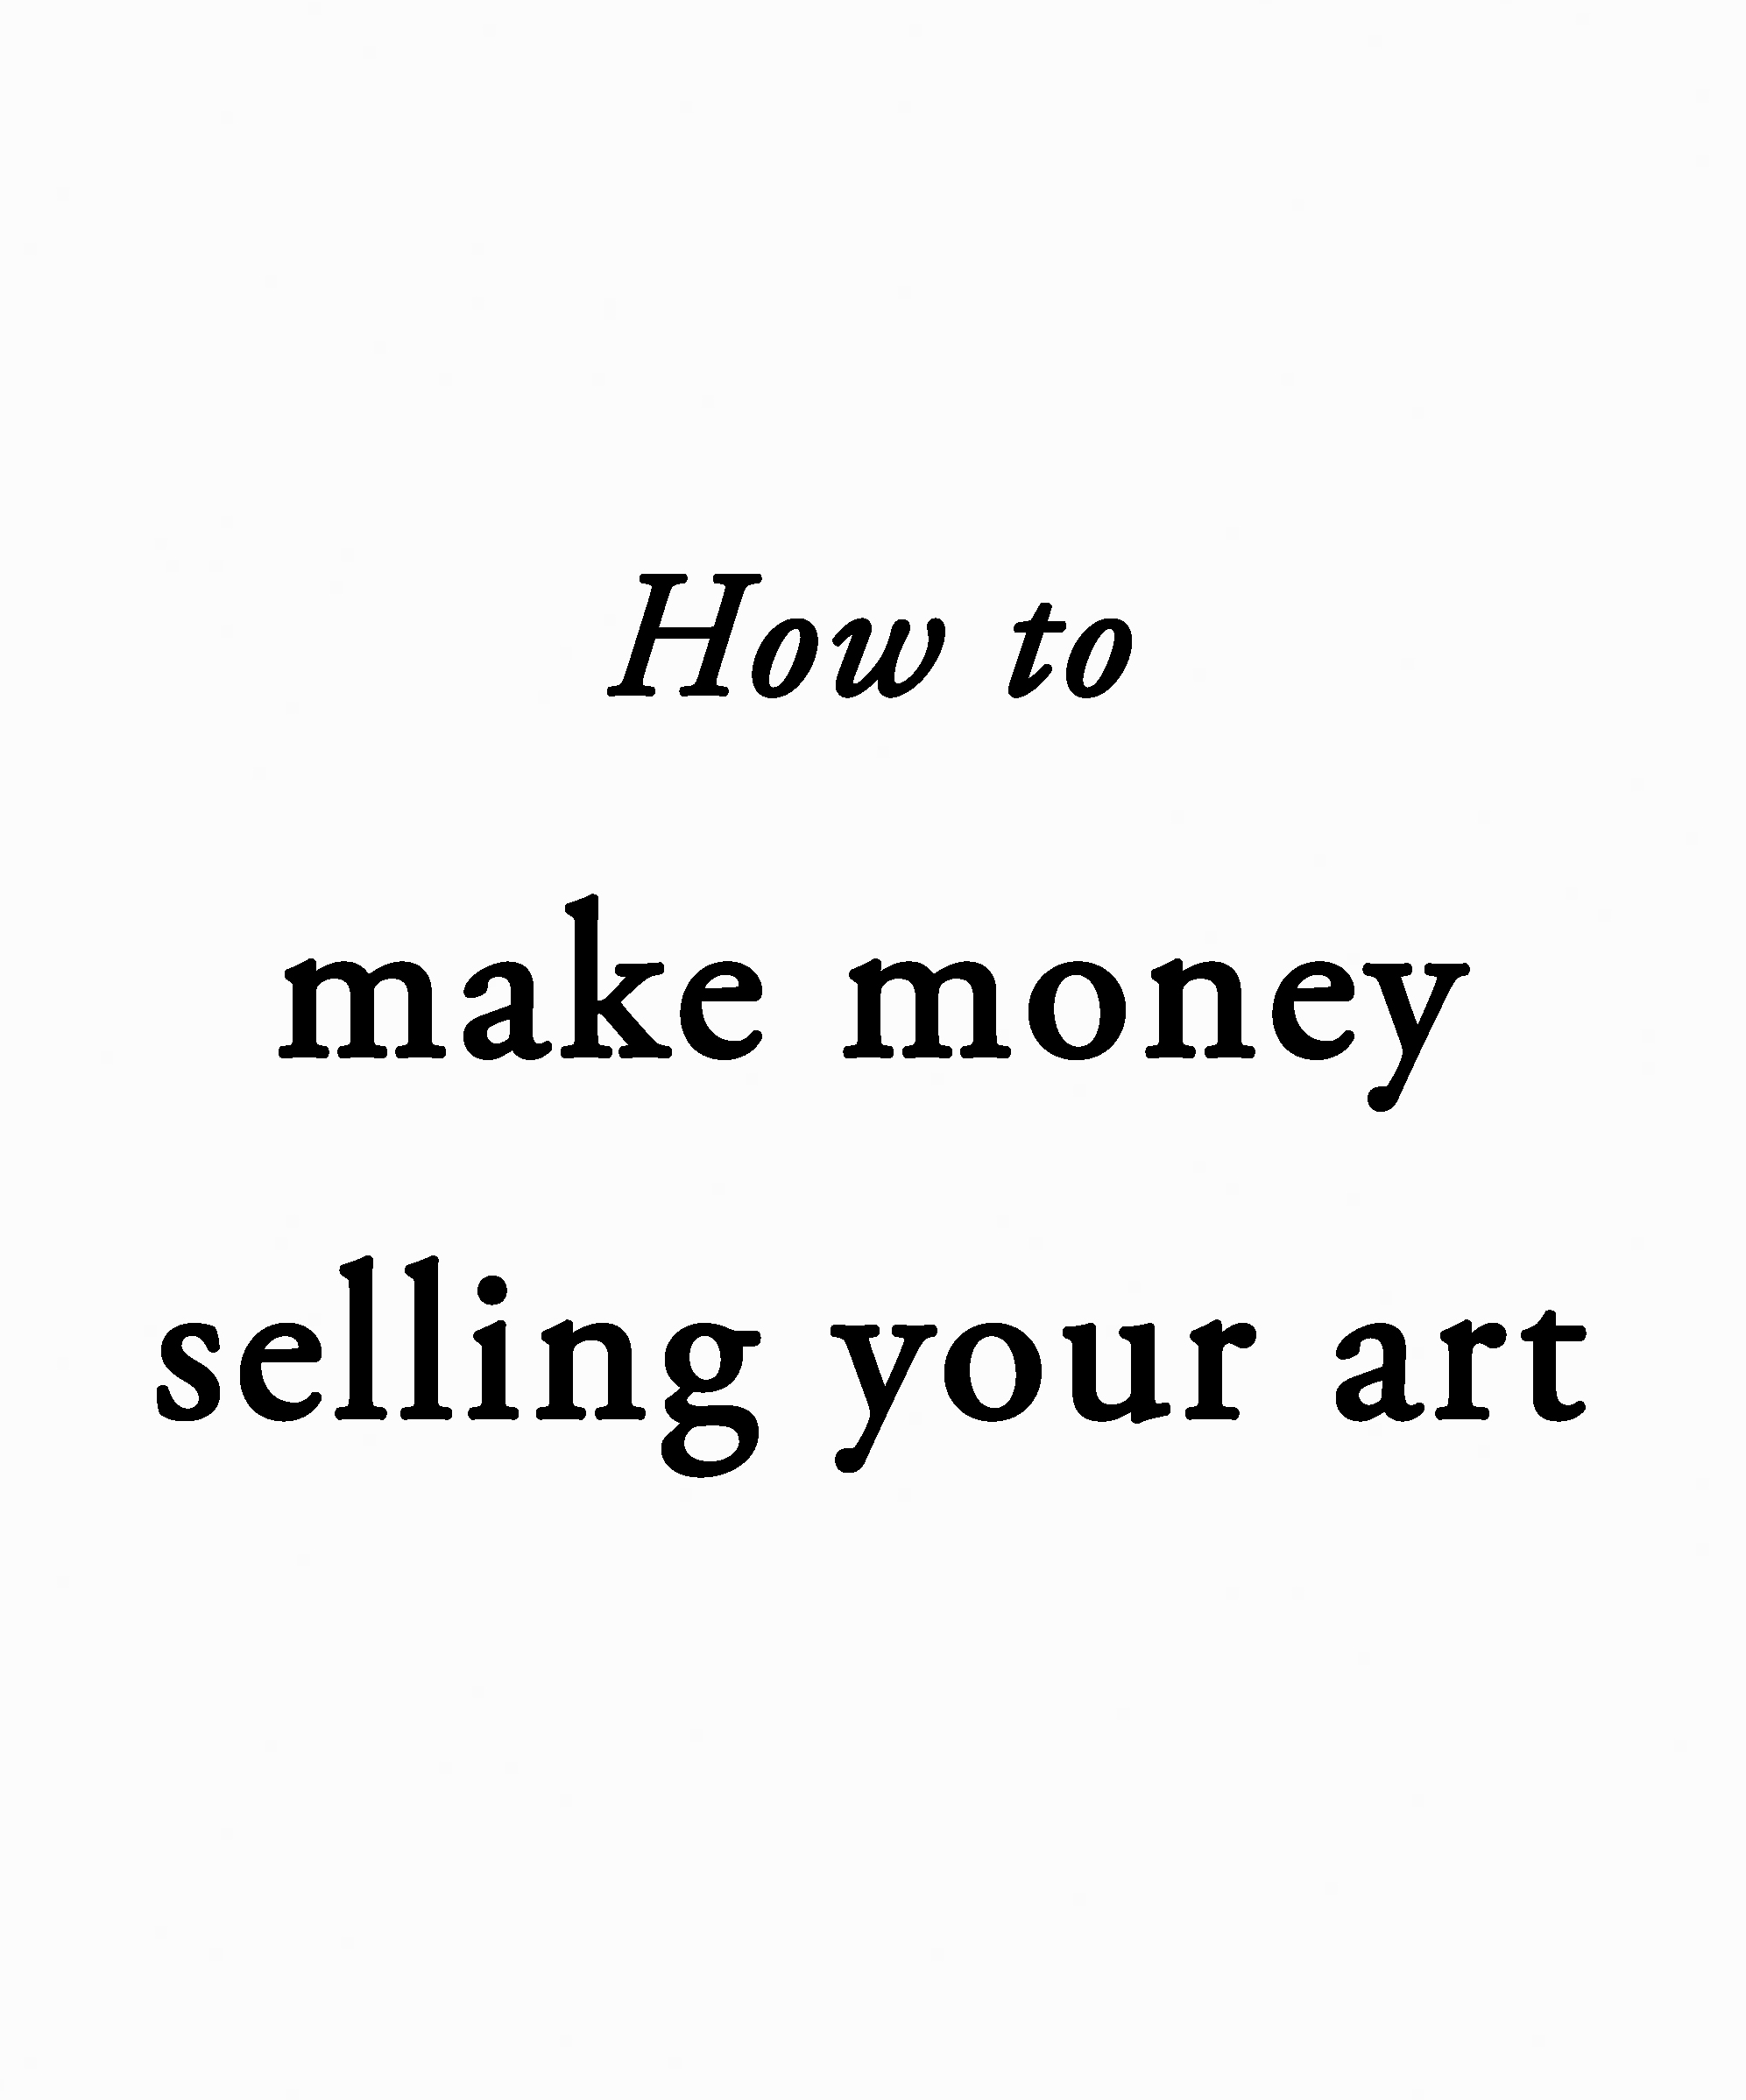 How to make money selling your art.jpg